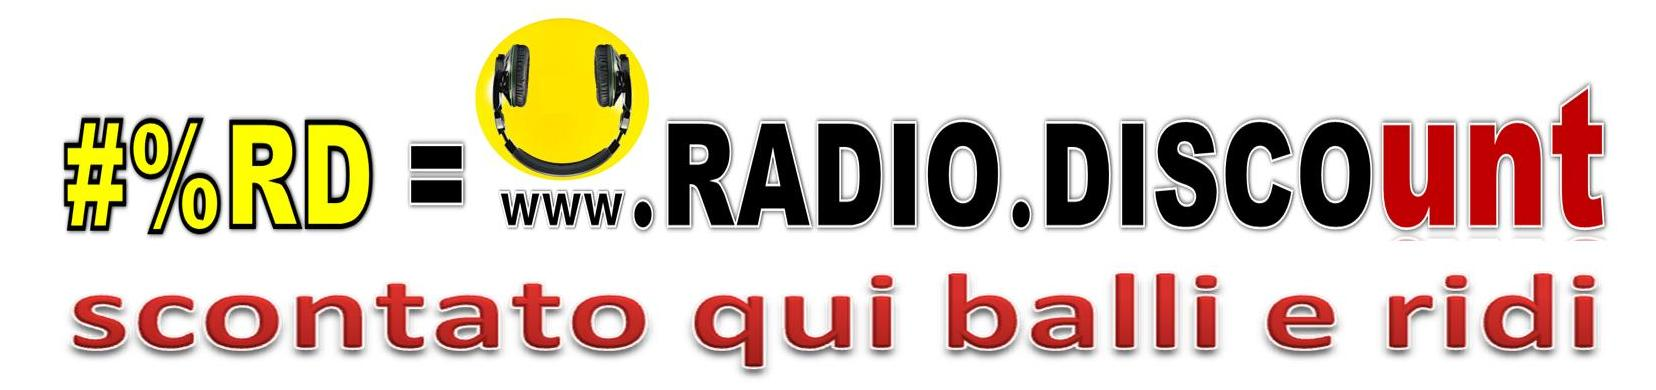 #%RD RADIO DISCOunt smile corto